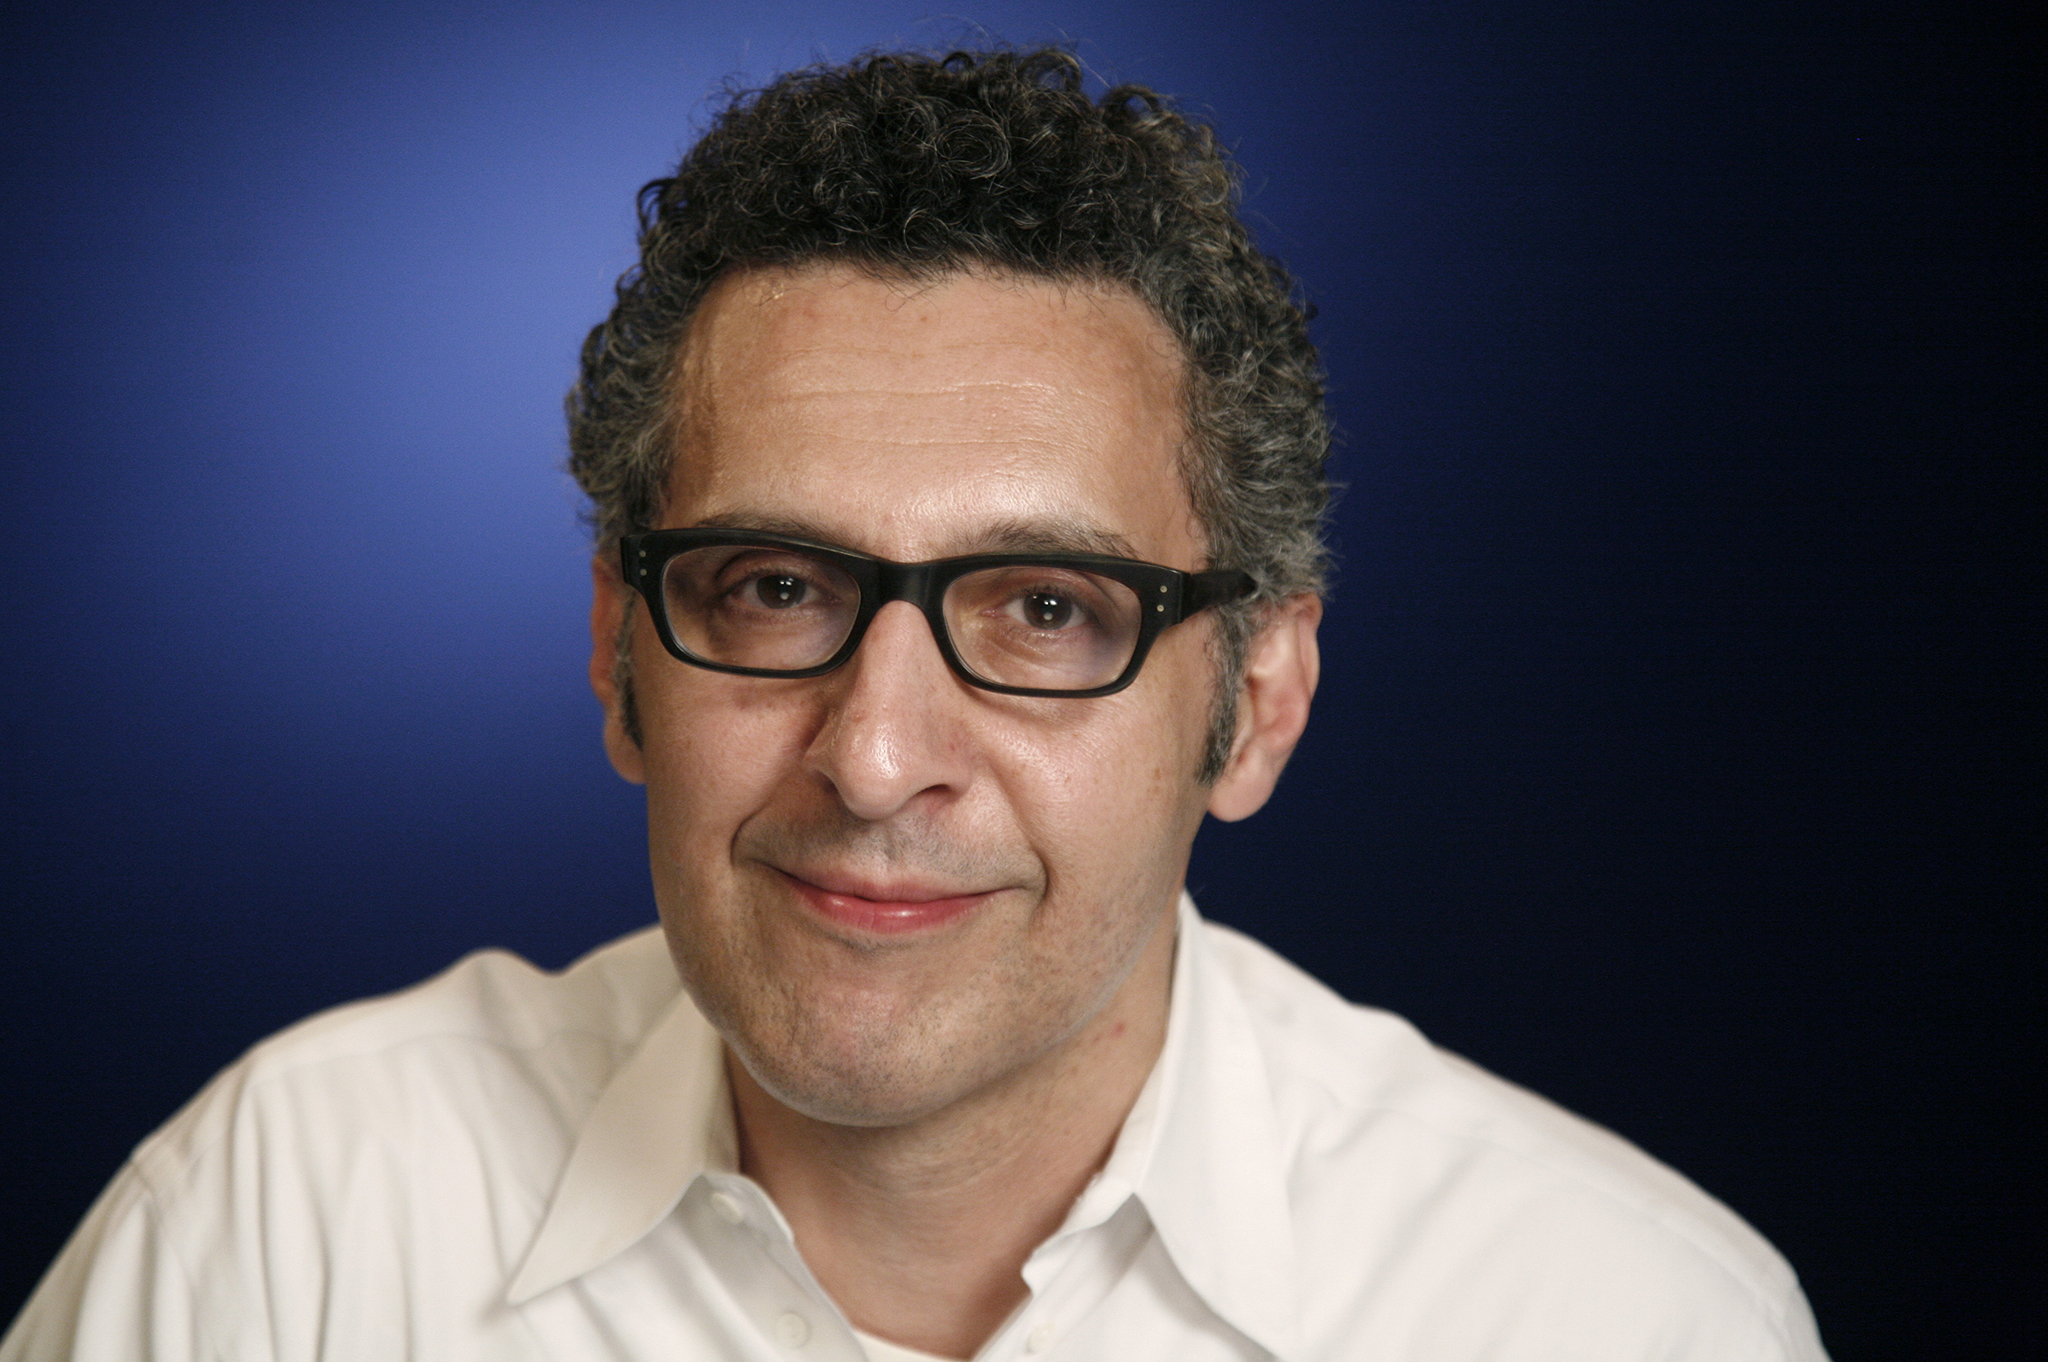 john turturro directorjohn turturro young, john turturro passione, john turturro actor, john turturro big lebowski, john turturro wiki, john turturro wife, john turturro woody allen, john turturro facebook, john turturro filmography, john turturro height, john turturro imdb, john turturro films, john turturro jesus, john turturro twitter, john turturro woody allen movie, john turturro director, john turturro the night of, john turturro family, john turturro quotes, john turturro george clooney